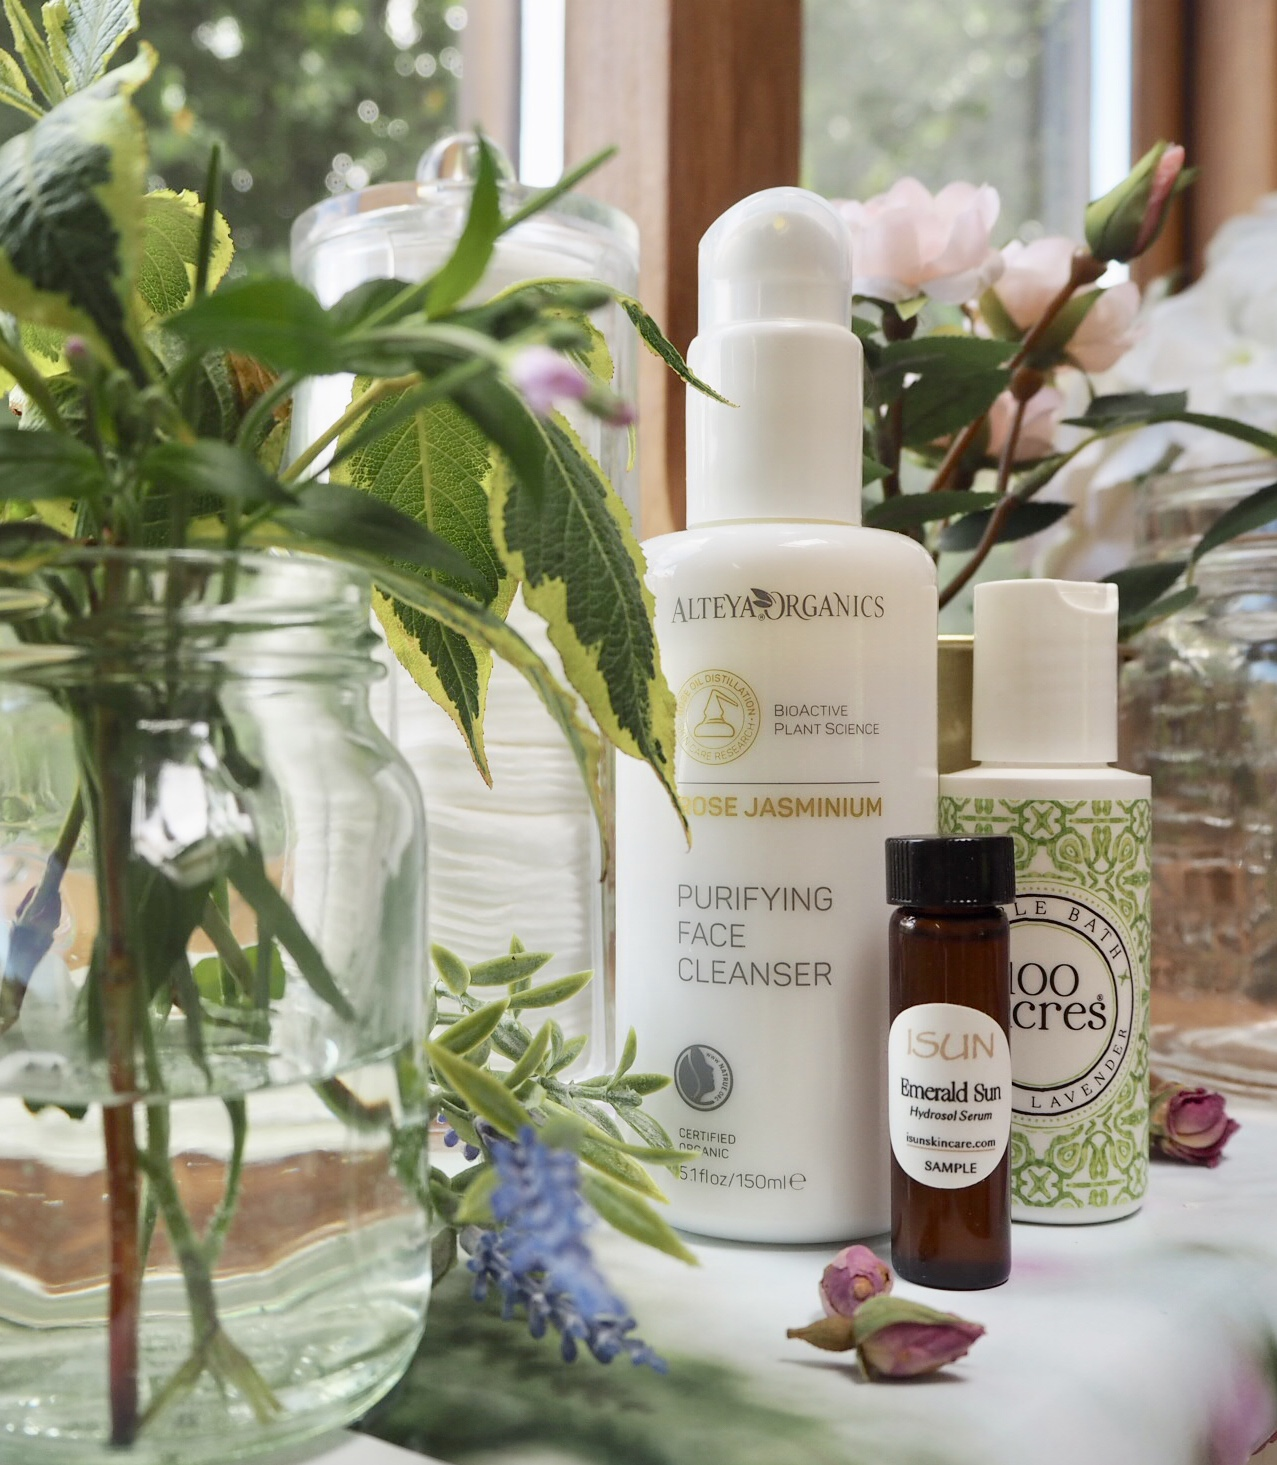 New beauty finds with That Natural Hygge